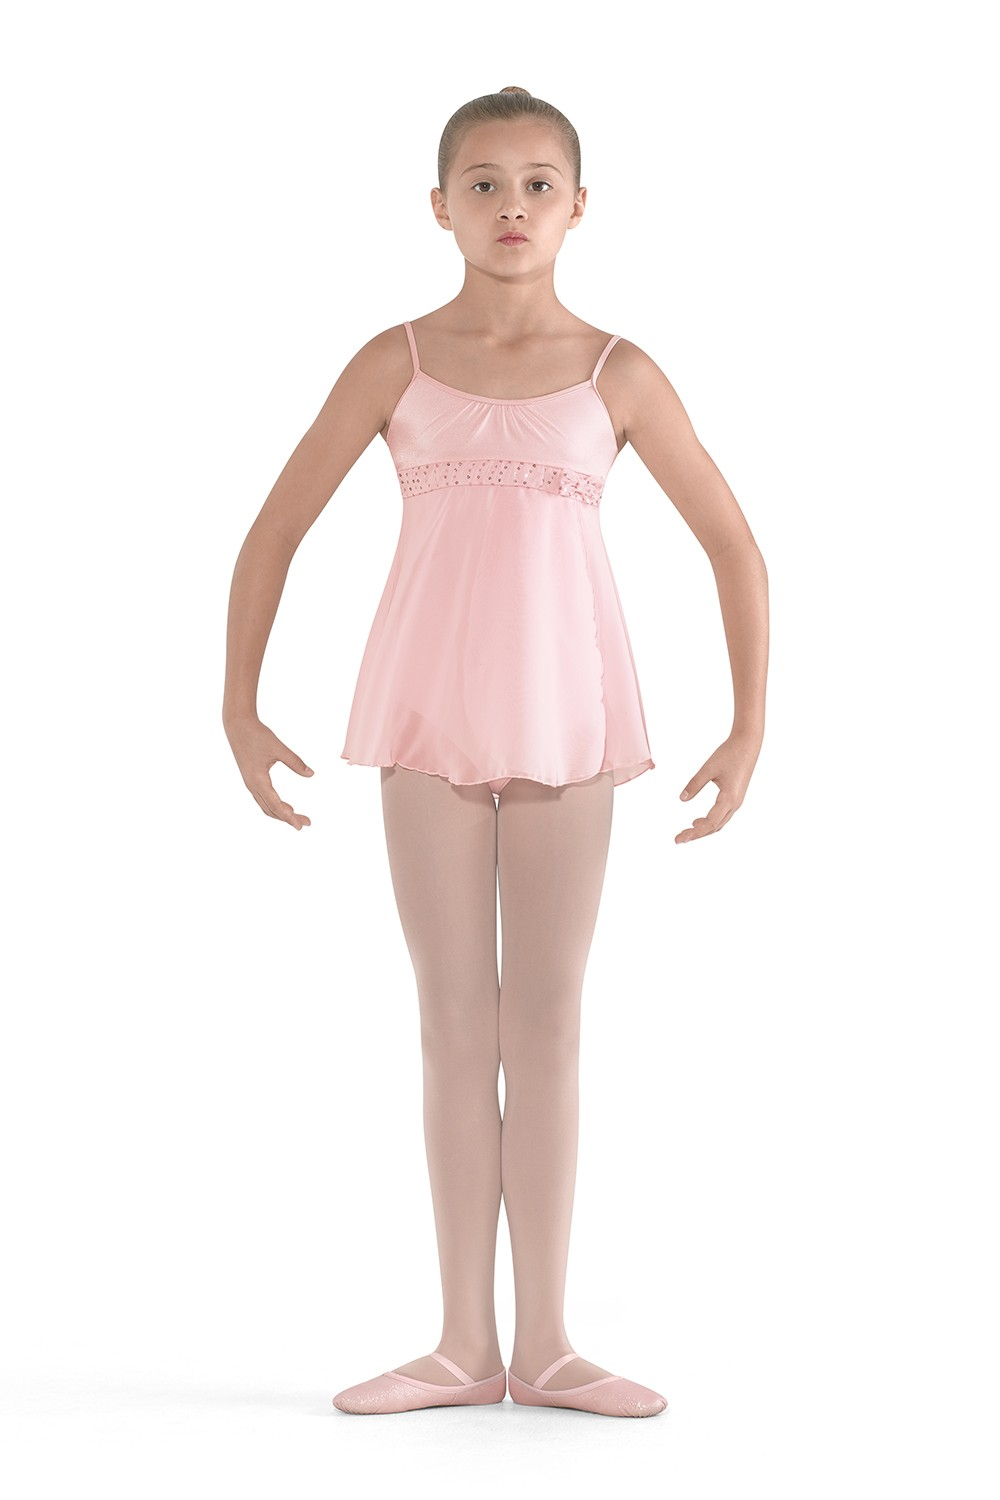 Adva Children's Dance Leotards